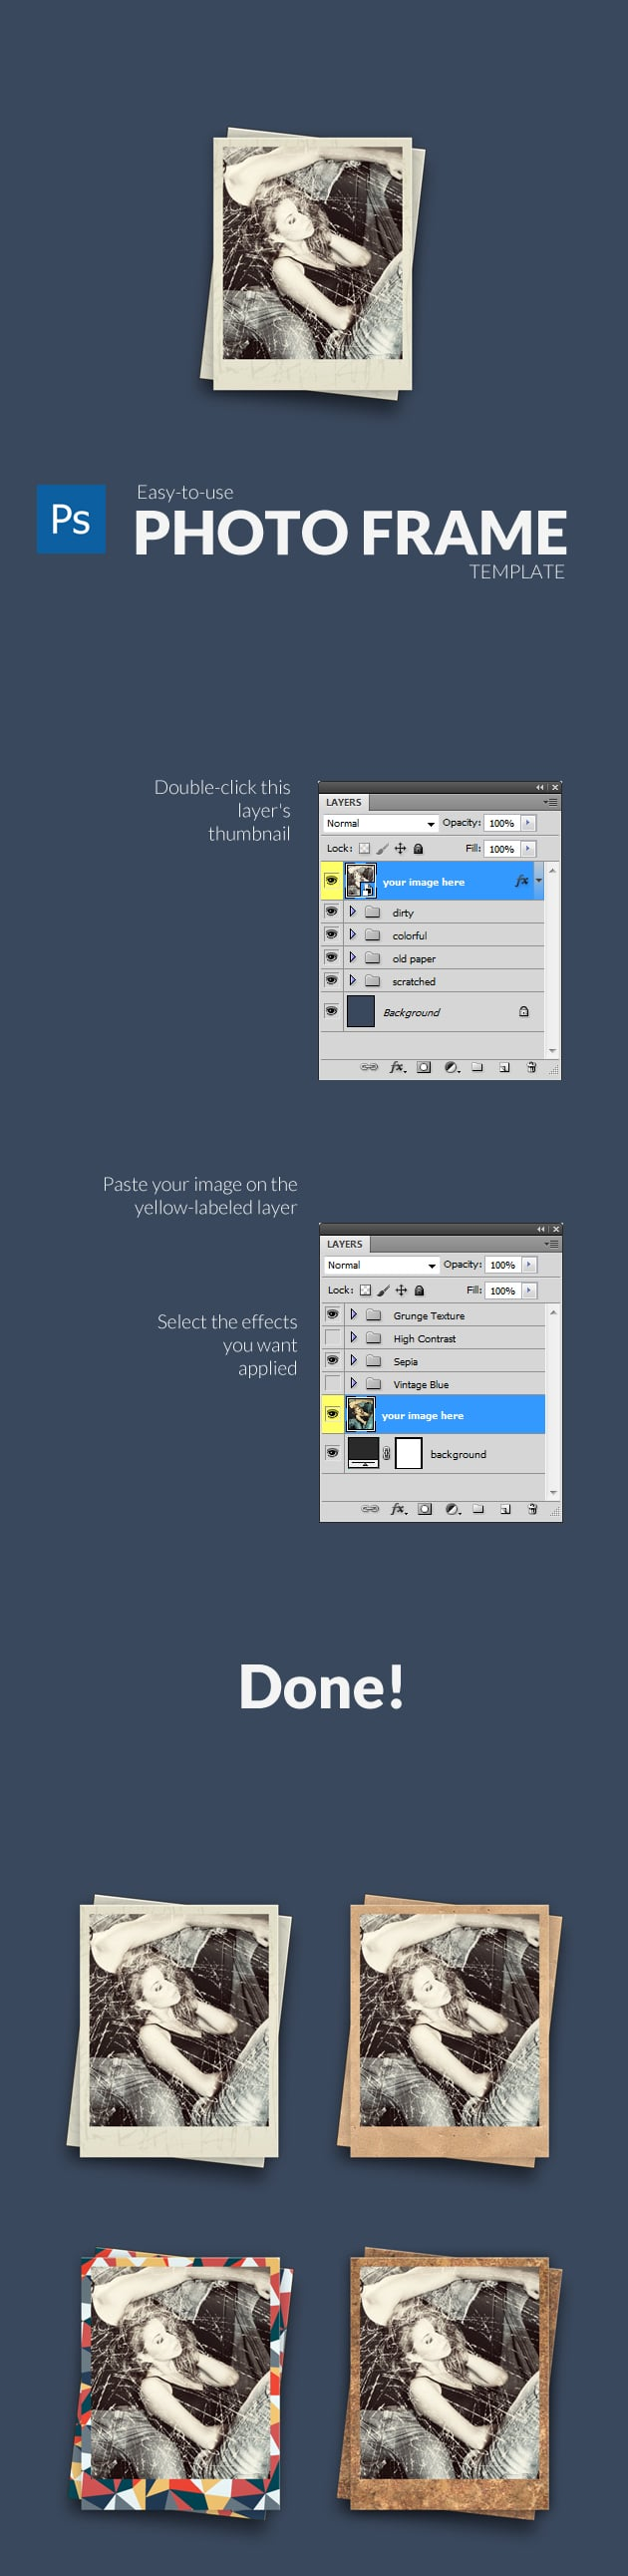 Magnificent Photoshop Actions